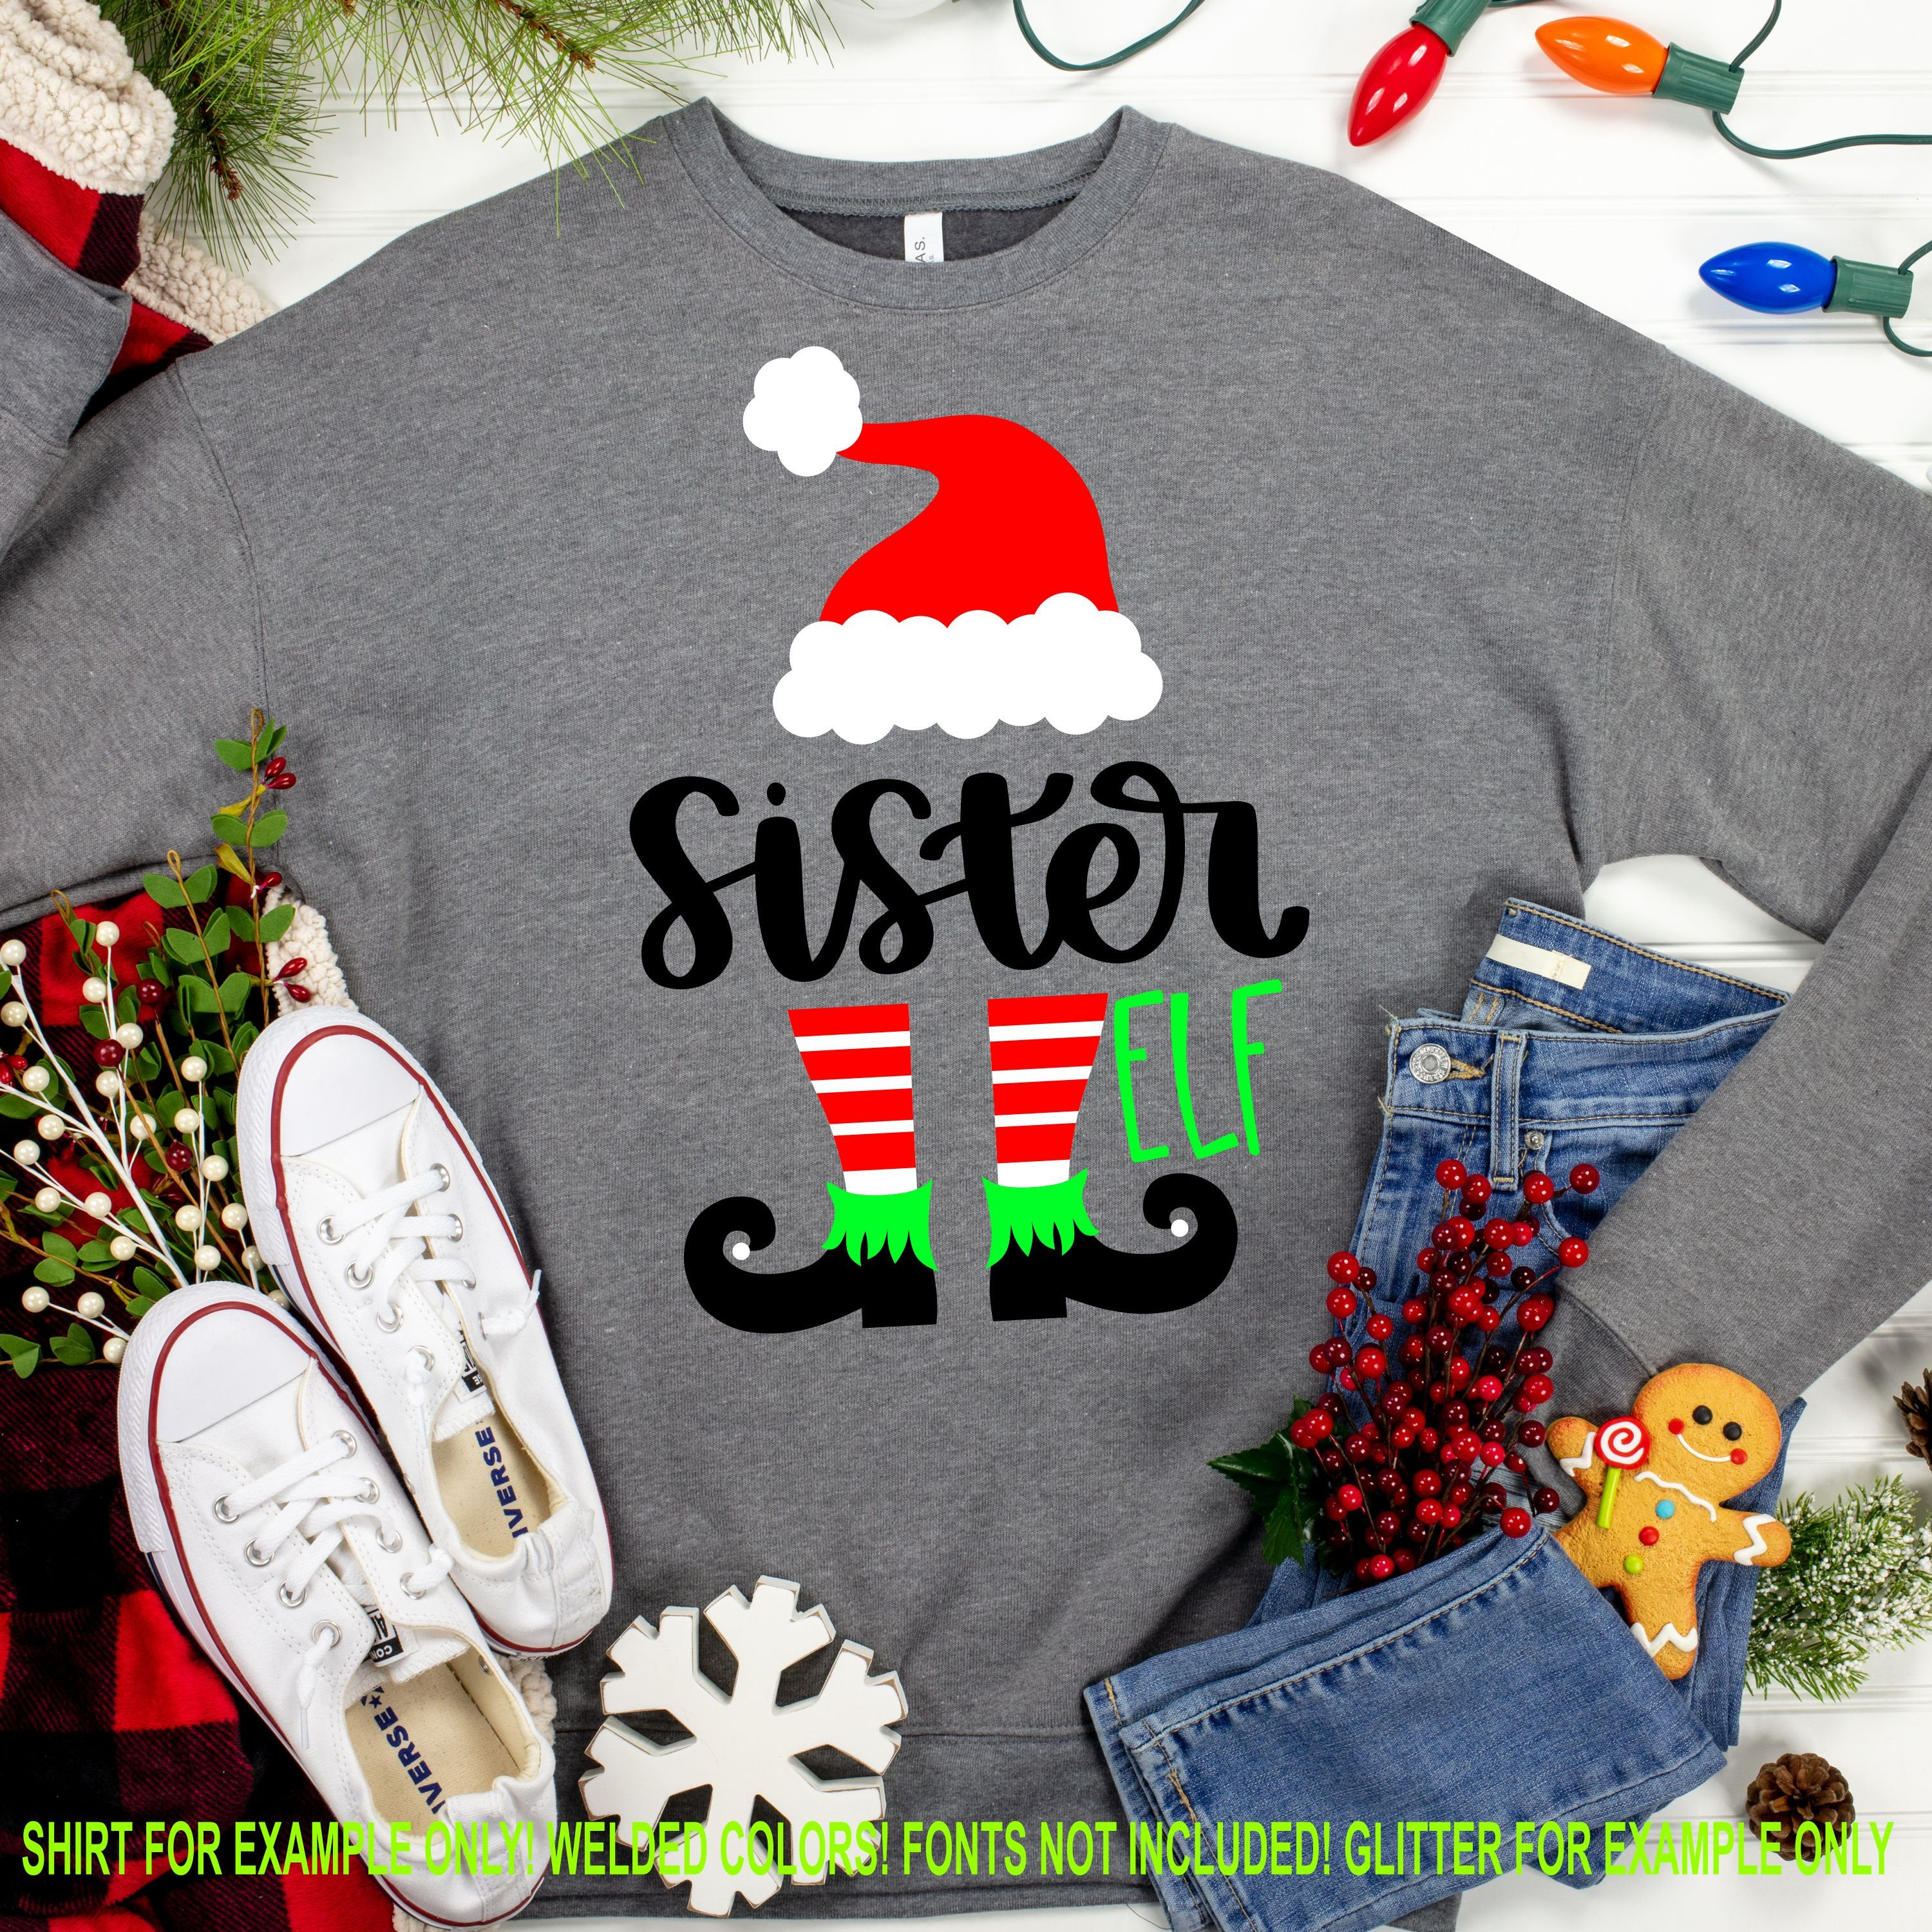 Sister-elf-svgchristmas-elf-svgfamily-matching-elf-svgelf-leg-svg-elf-monogram-svgchristmas-svg-designschristmas-cut-file-cricut-svg-5fa0923a